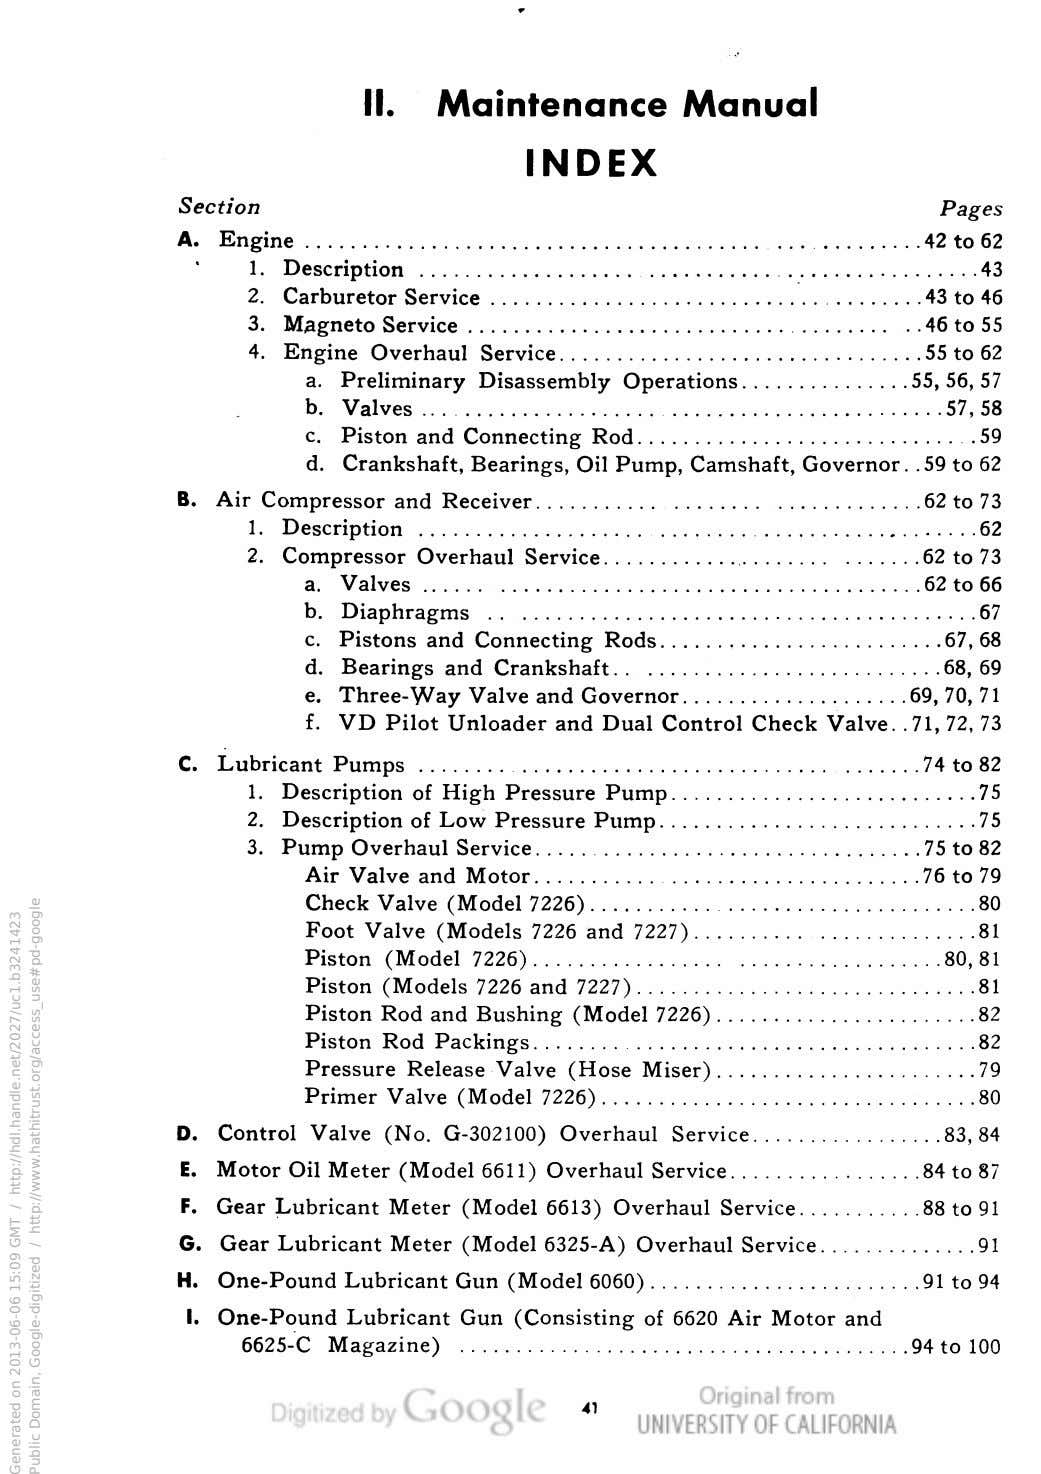 II. Maintenance Manual INDEX Section Pages A. Engine 42 to 62 1. Description 43 2.